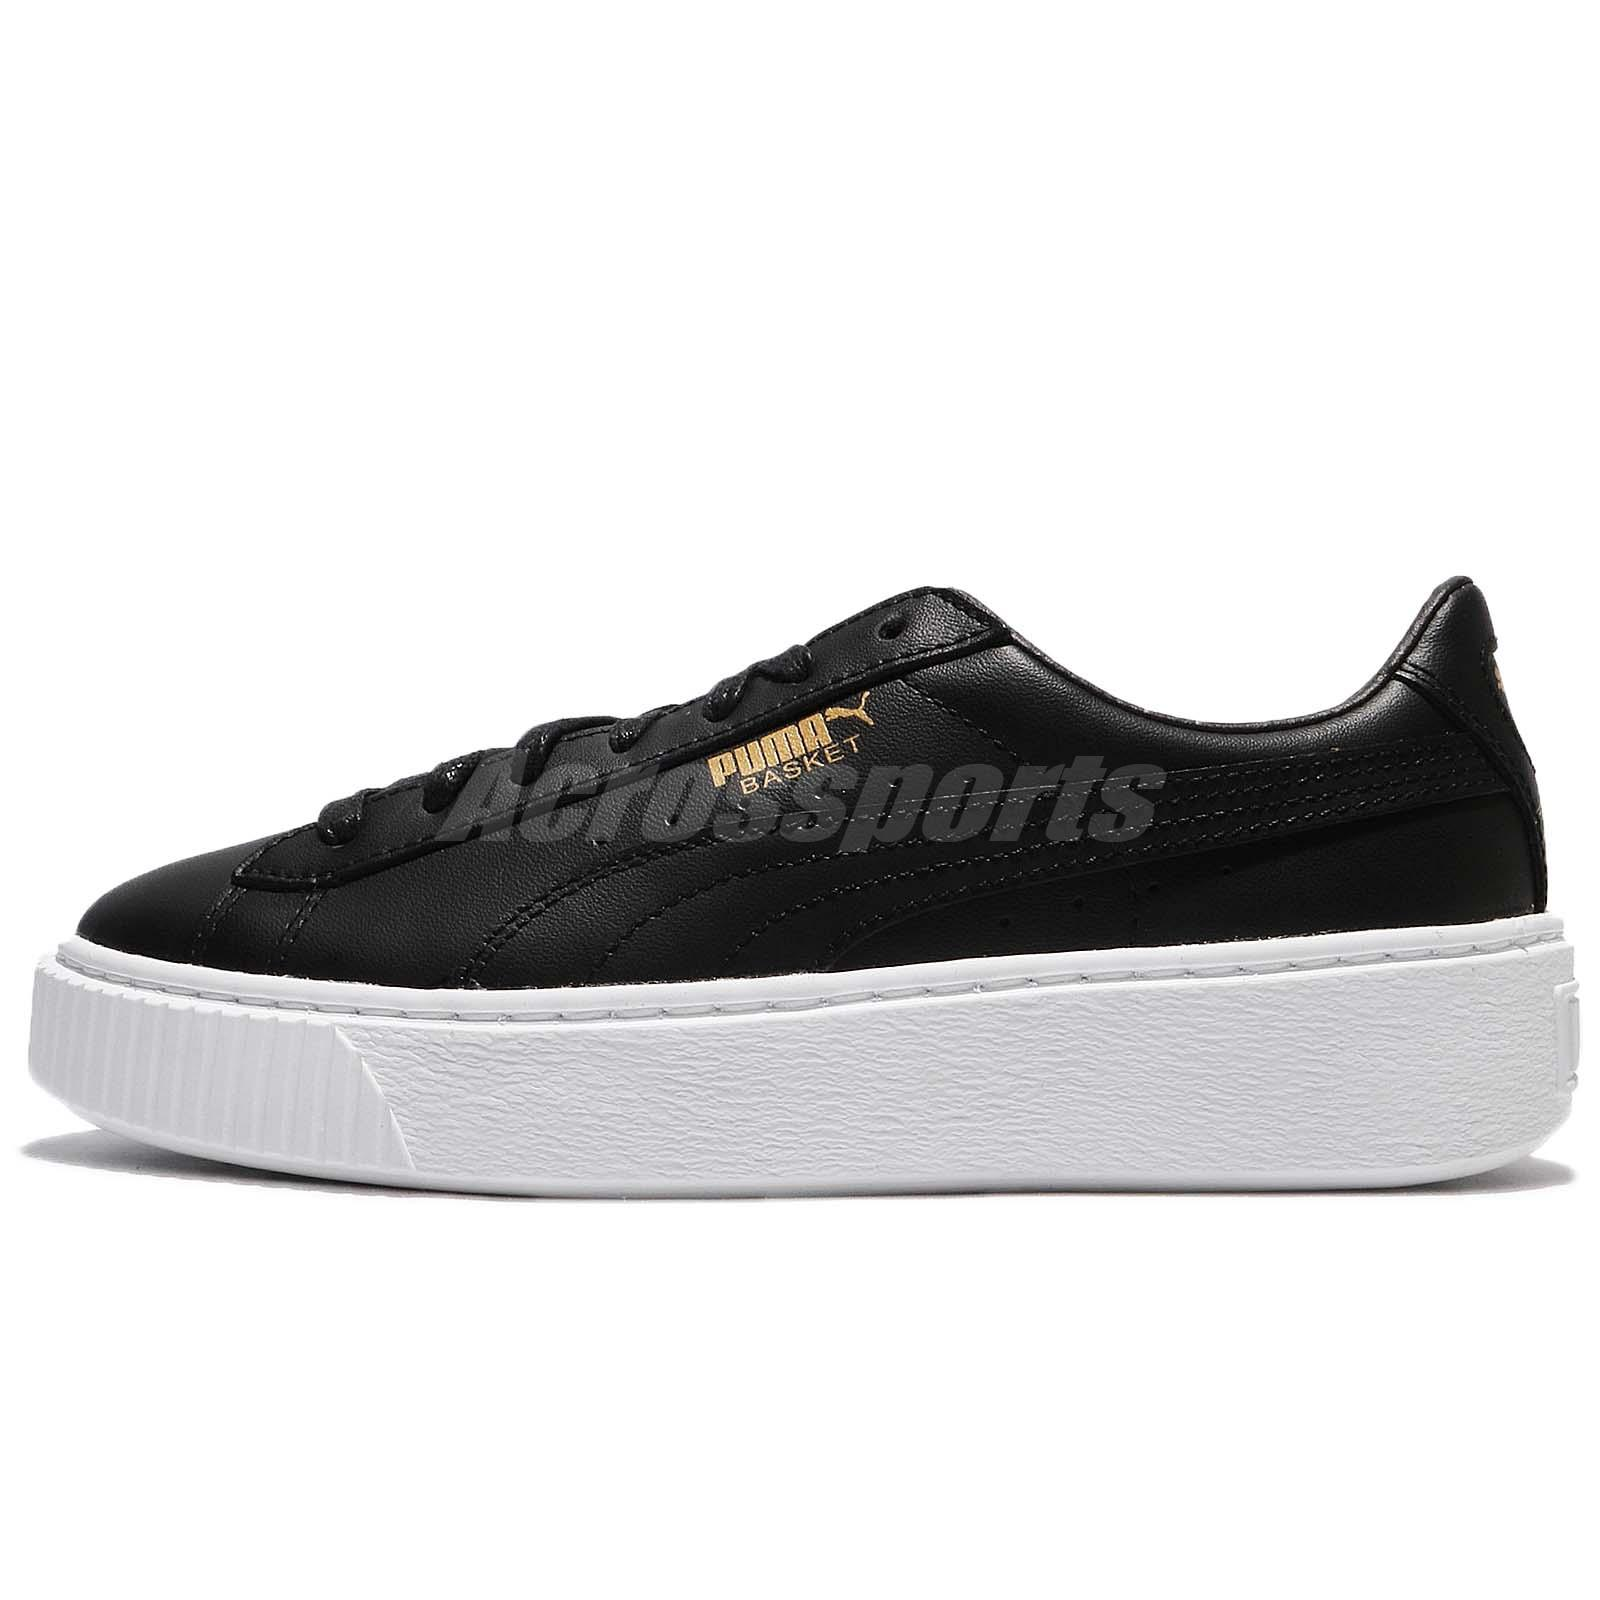 Puma Basket Platform Core Black Gold Leather Women Fashion Shoe Sneaker  36404003 1a95c012c